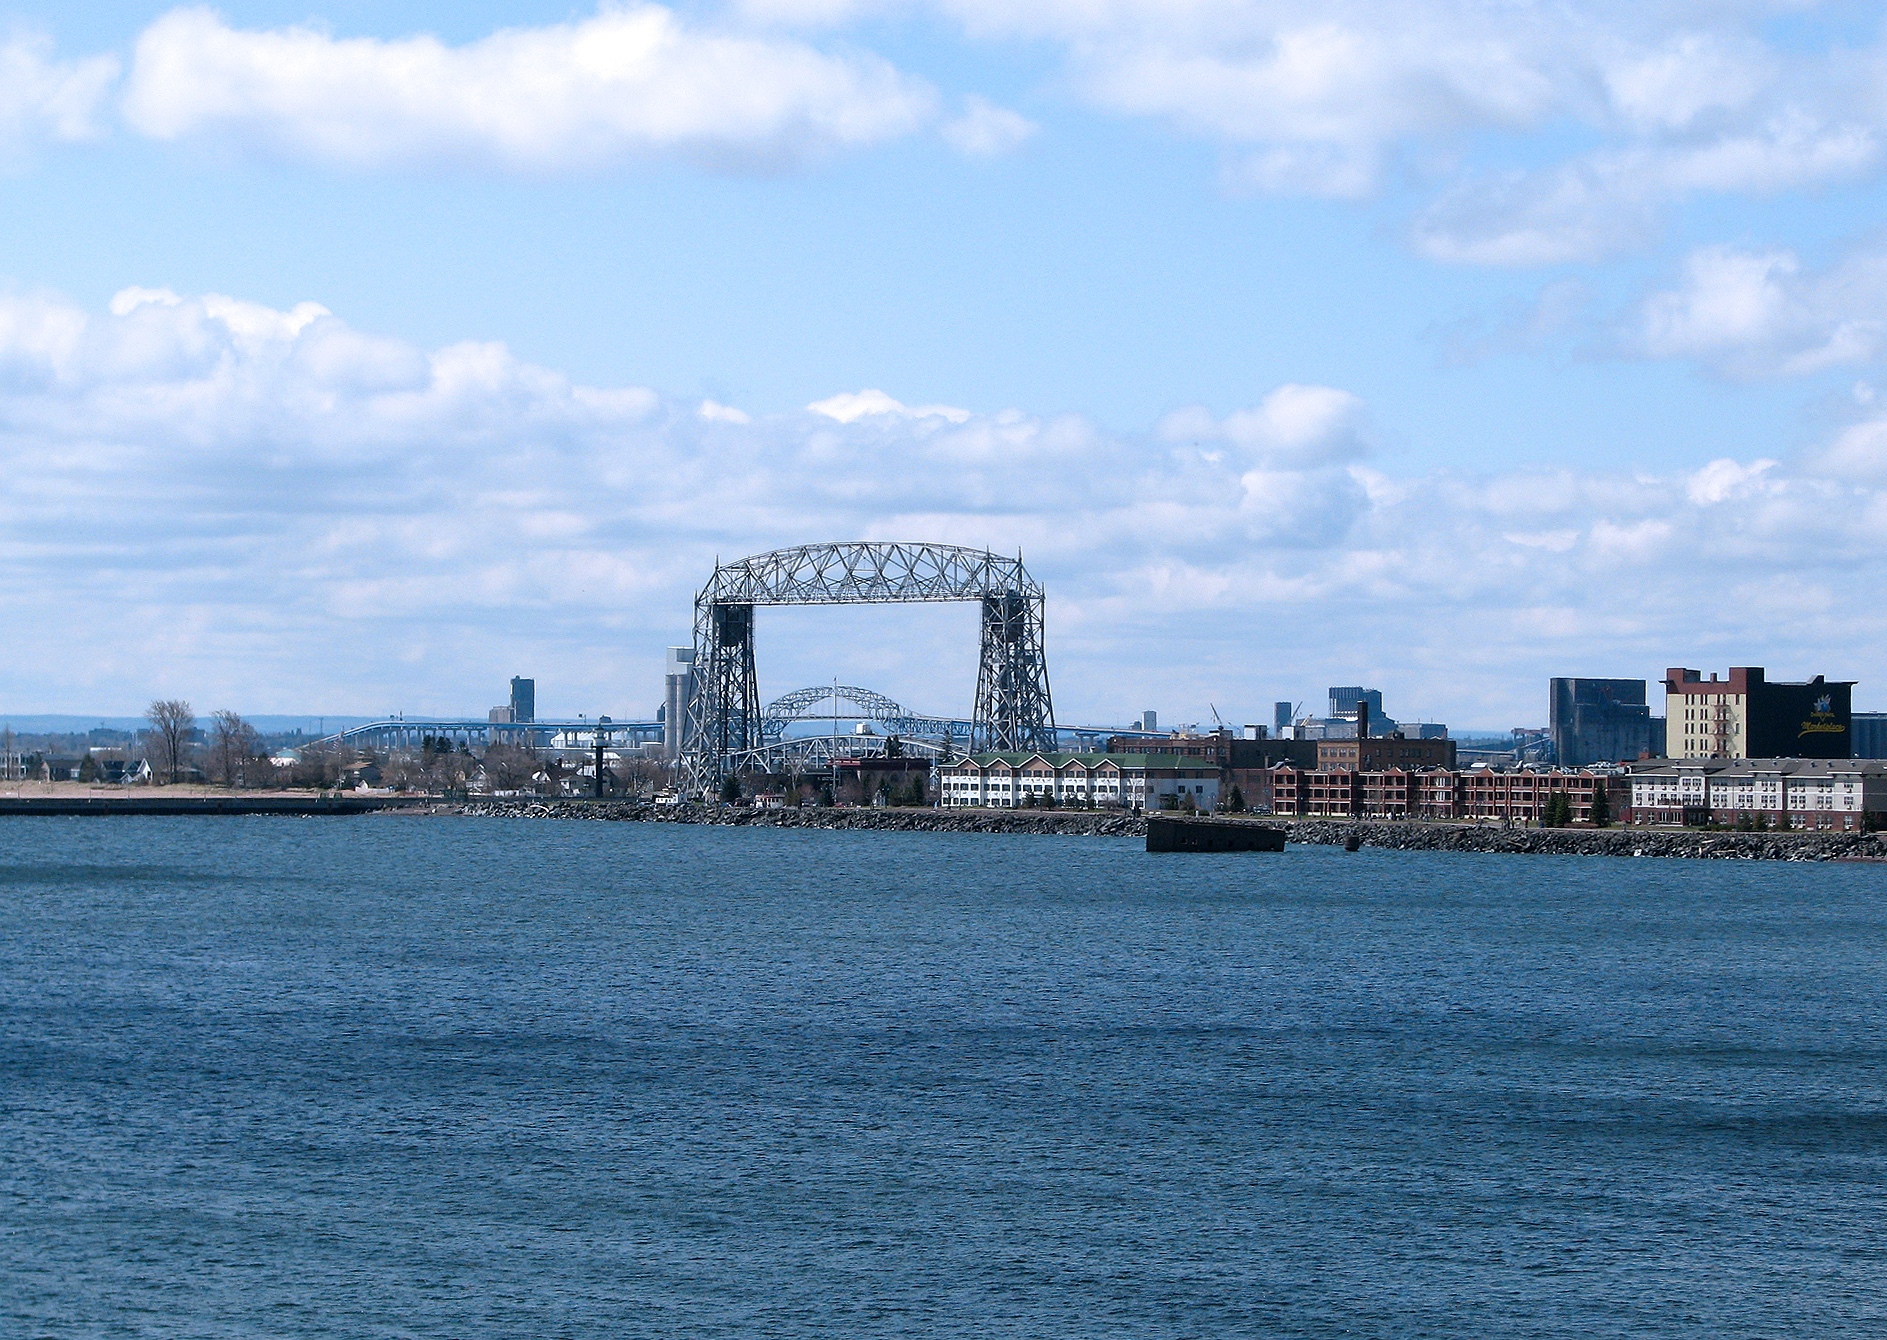 duluth_aerial_lift_bridge_lake_superior_canal_park